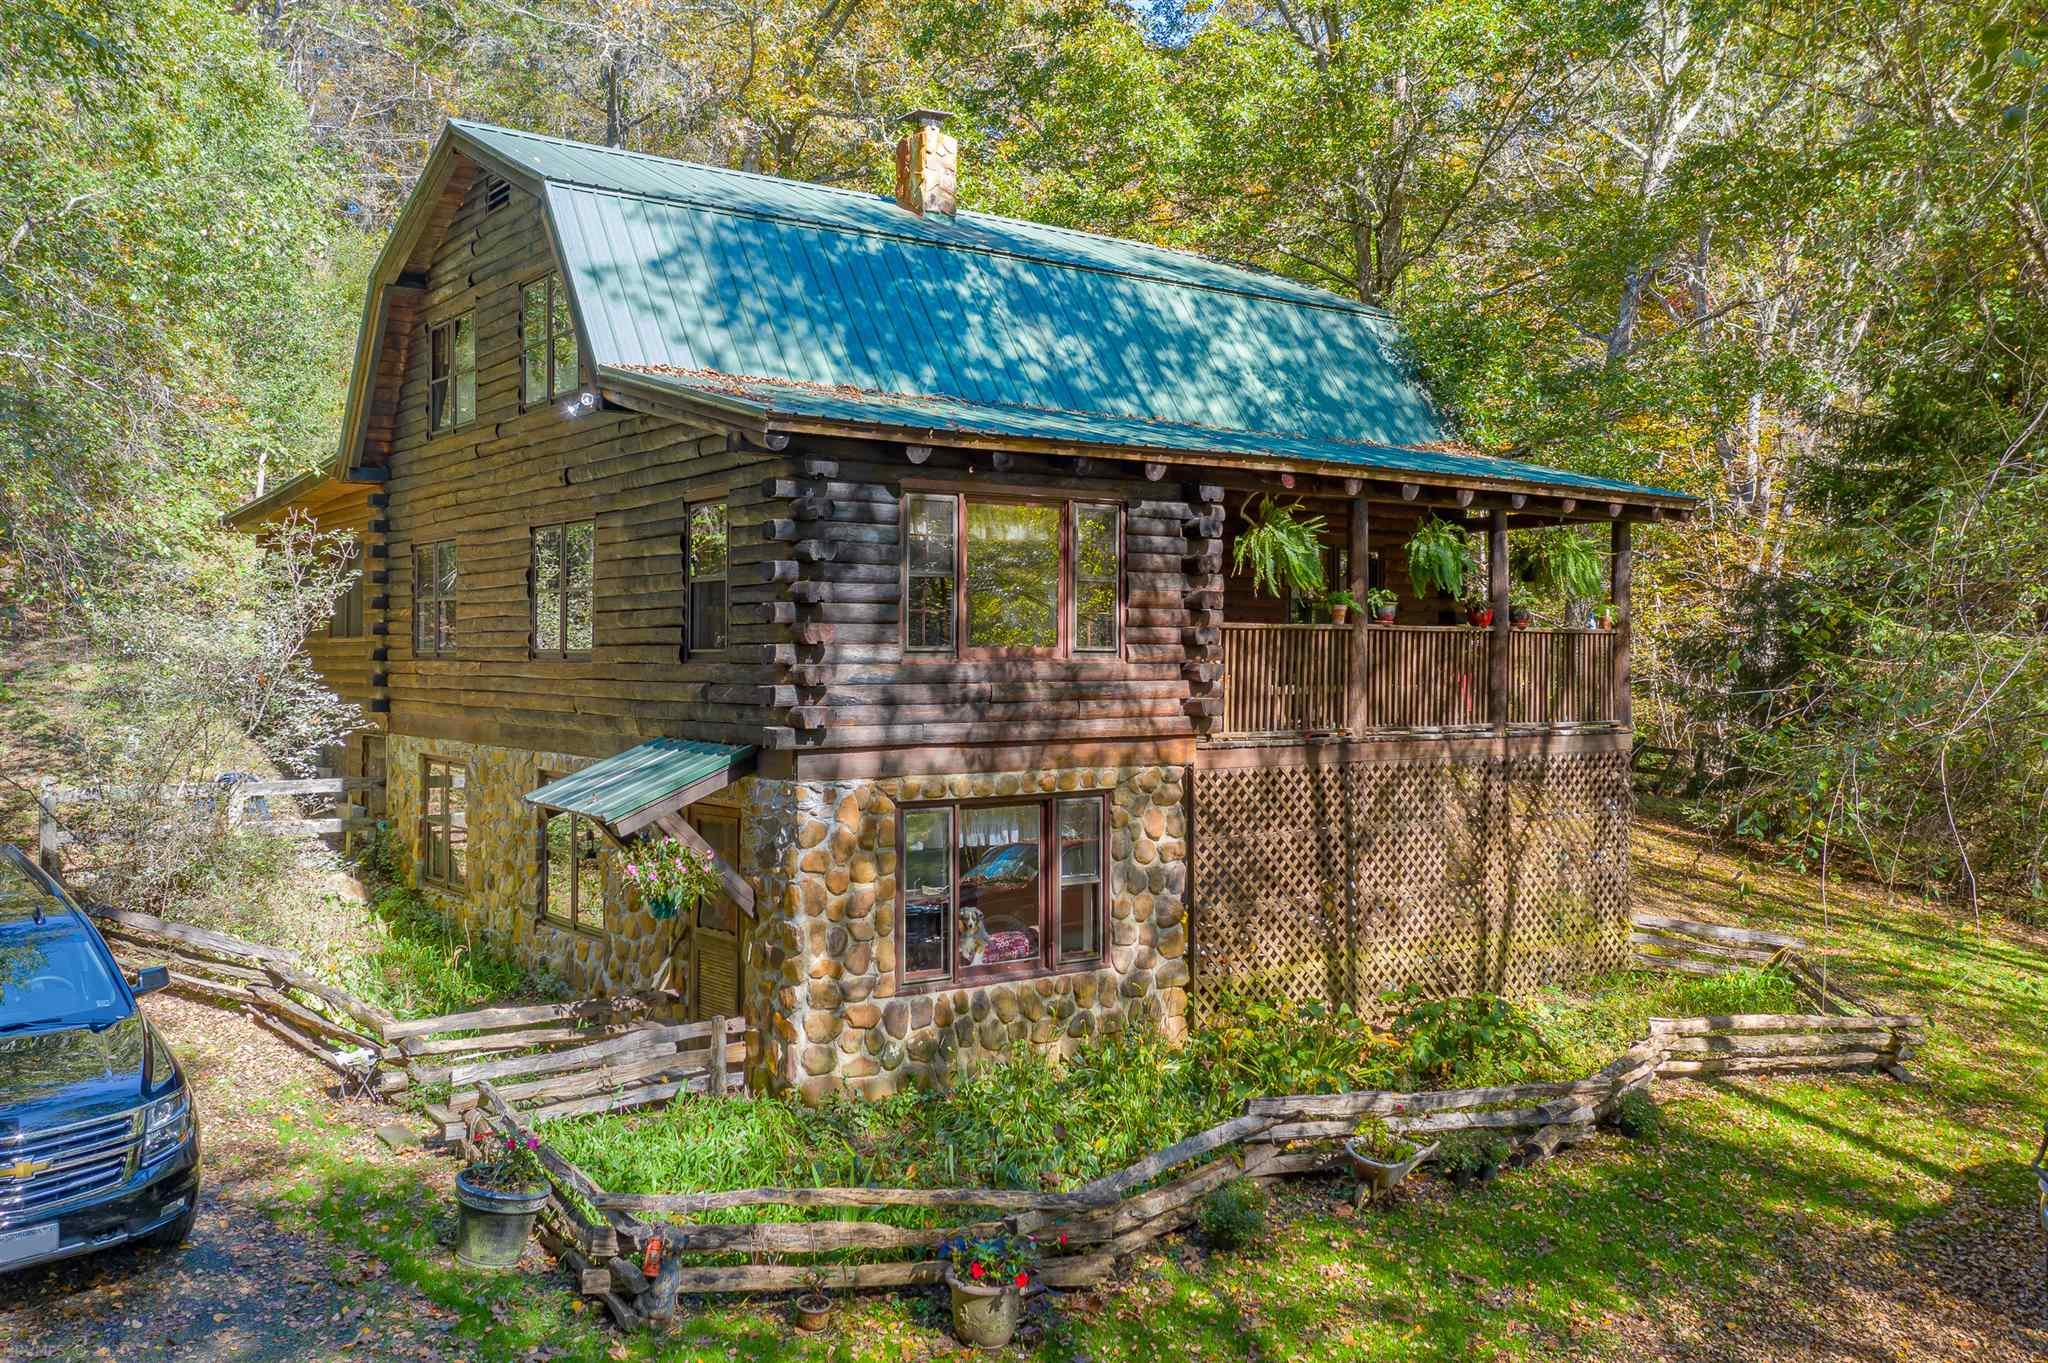 You will love waking to serene living in the Blue Ridge Mountains at this 3 bed, 3 bath cabin. The home rests on 45 acres of land to call your own. The 2582 sq. ft. home features a cozy cabin design that will feel like your personal mountain retreat. You can grill, enjoy a meal, drink a great cup of coffee, and enjoy a tranquil setting on the front porch or back patio. On nights spent inside, you will enjoy the wood burning stove and the finished basement. With 45 acres including some cleared pasture, you can enjoy all the outdoor recreation you desire from hiking and horseback riding, to hunting and ATV riding. The home also includes multiple outside sheds to store everything from tools to gardening supplies and toys, and stables ready for your horses and hobbies. While you can experience the oasis of the mountains, the home is conveniently situated less than 12 miles from Grayson Highlands, 15 miles from Independence, 28 miles to Marion and less than 10 miles to Troutdale.